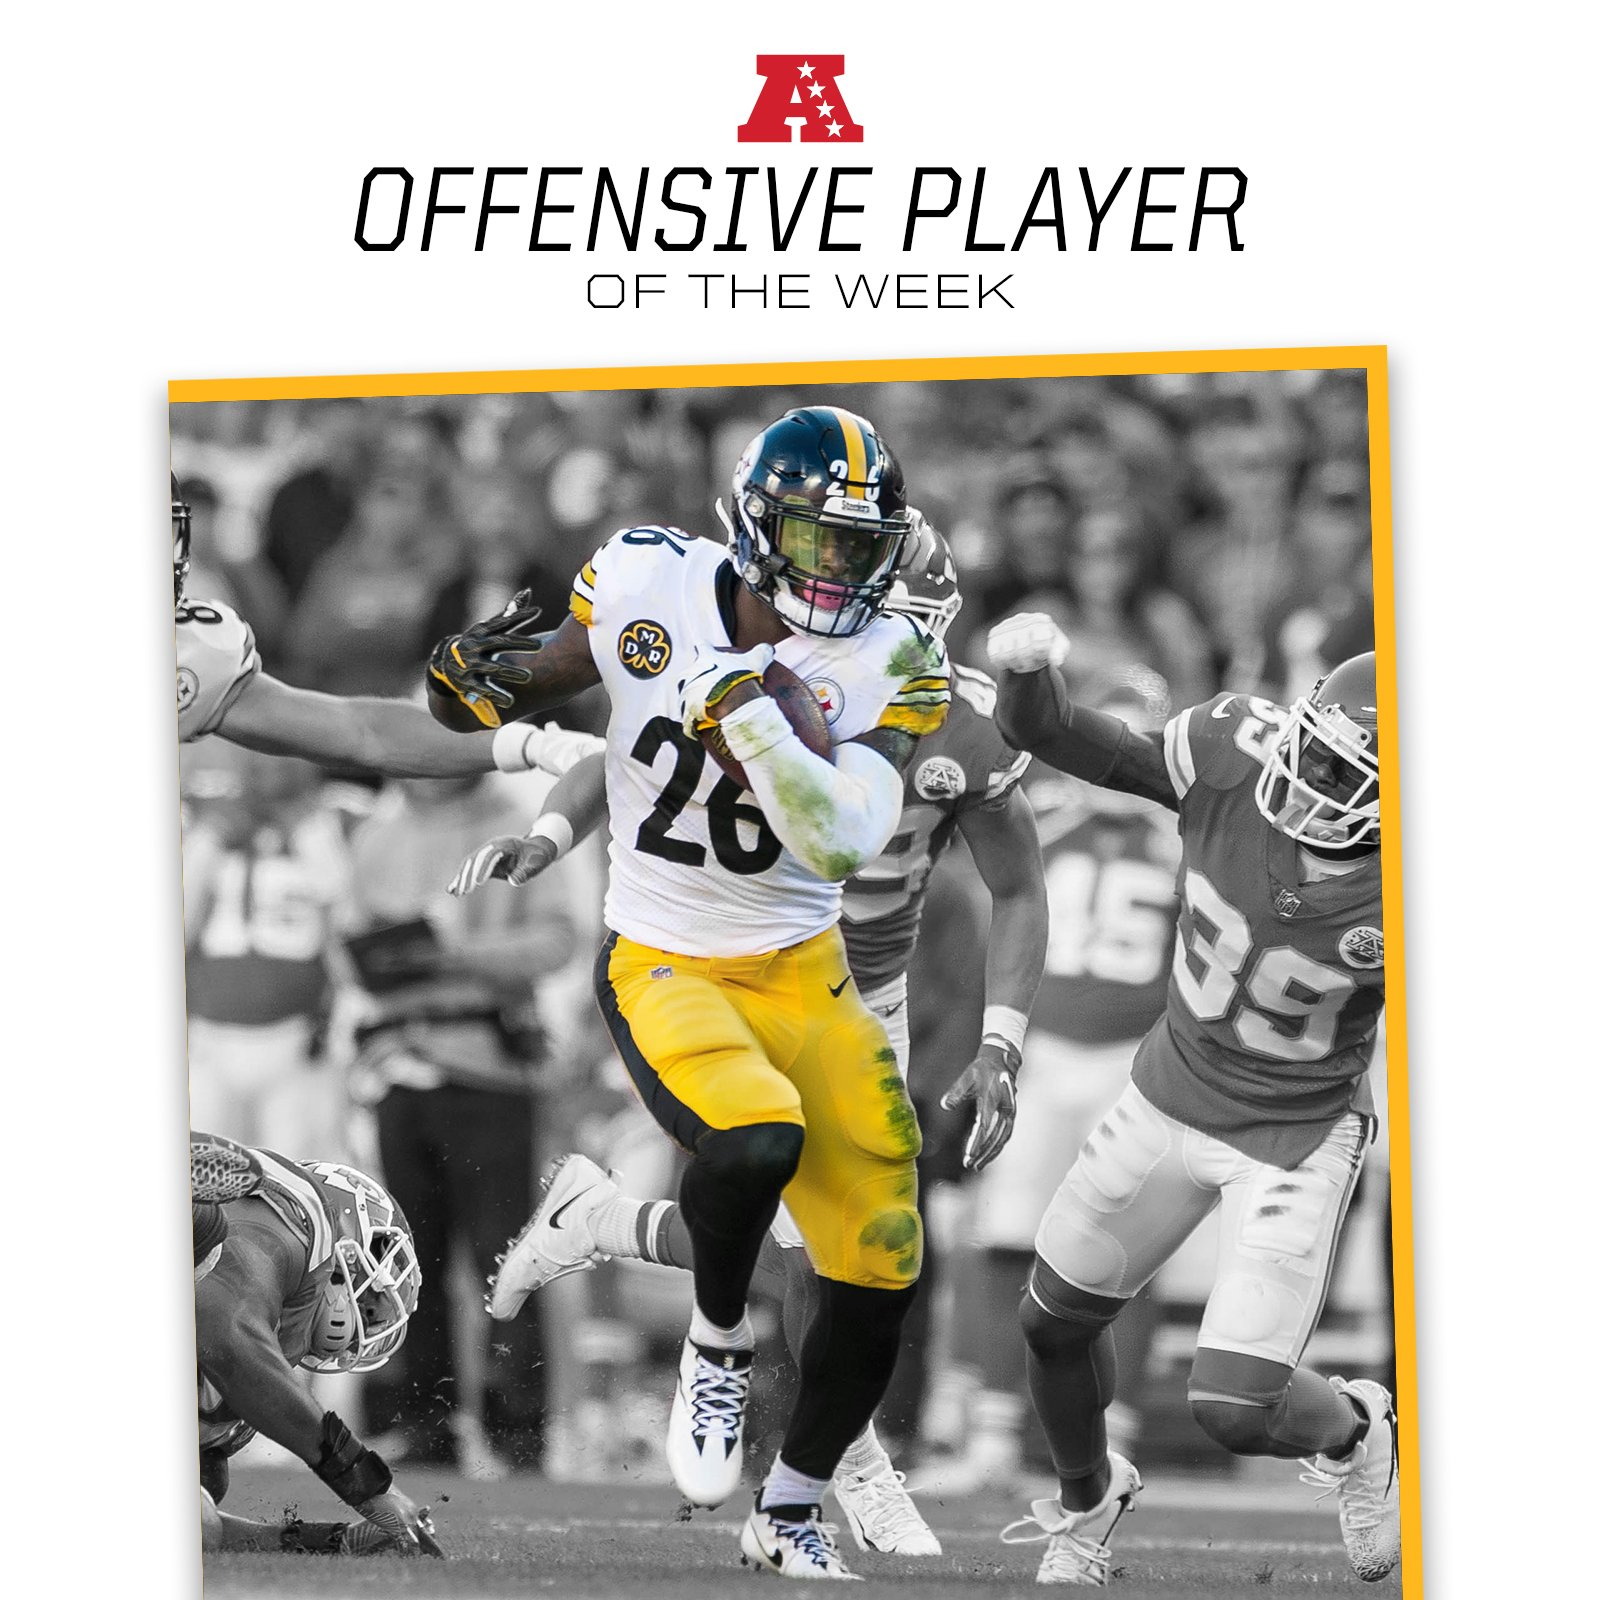 Le'Veon Bell has been named AFC Offensive Player of the Week.  MORE: https://t.co/KdQH9xKMBh https://t.co/MrK6wYonMC